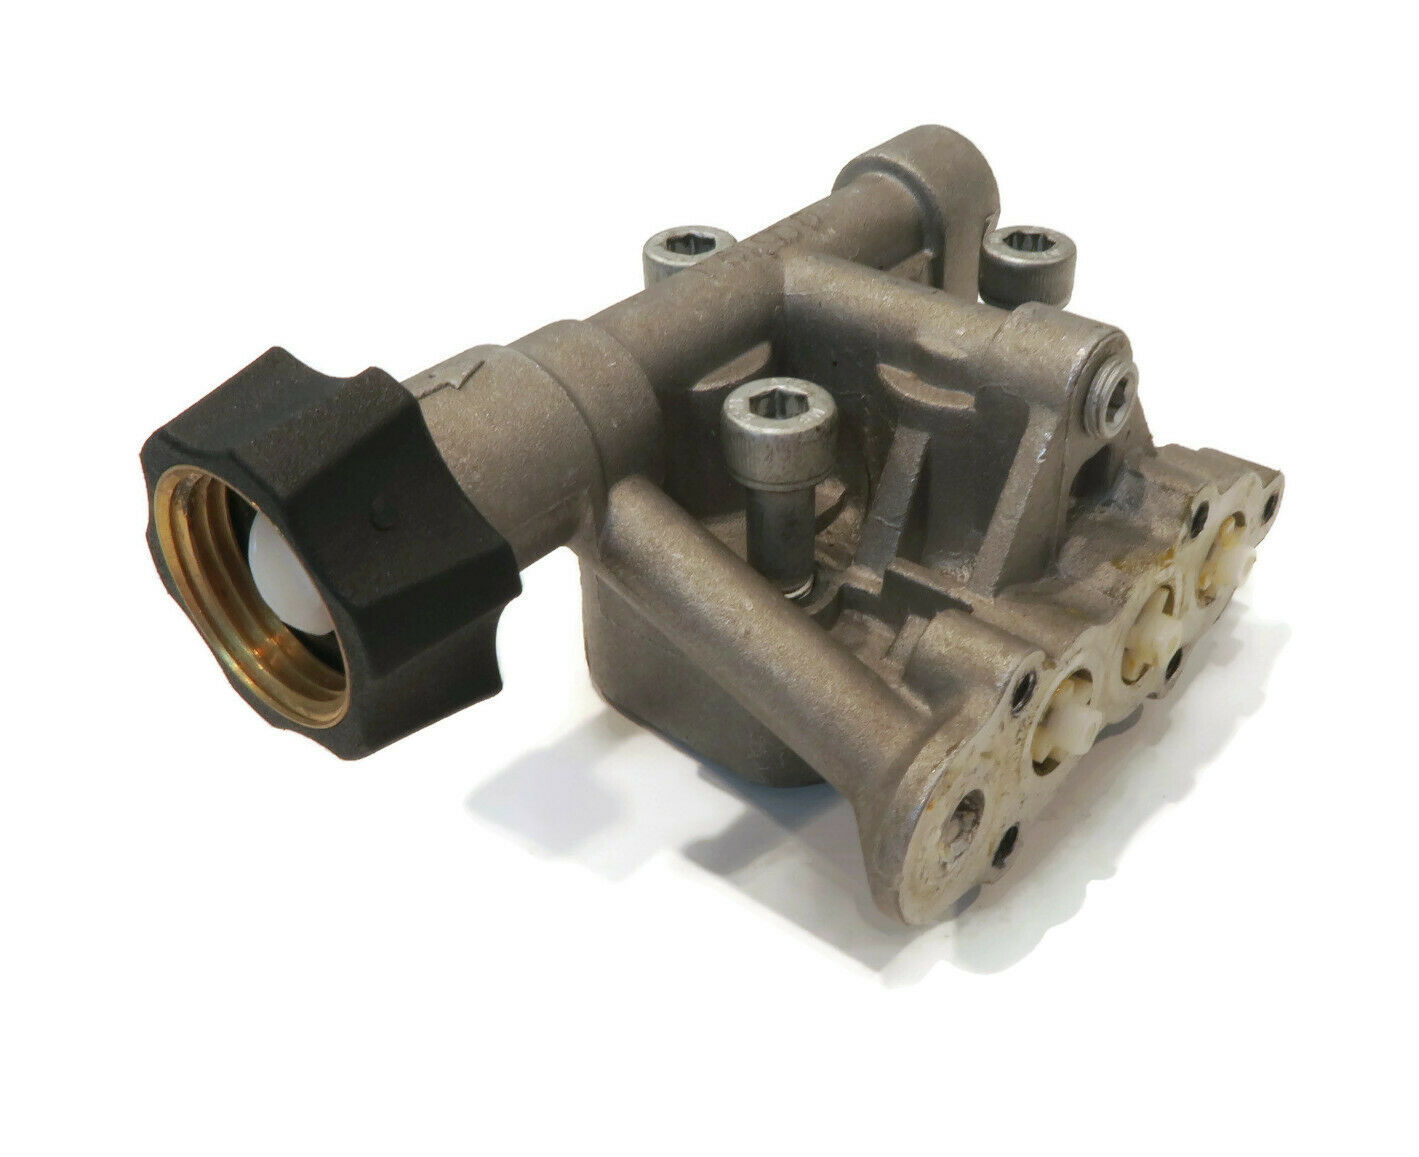 Details About Vertical Pressure Washer Pump Head 2800 Psi For Excell Troy Bilt Husky Generac